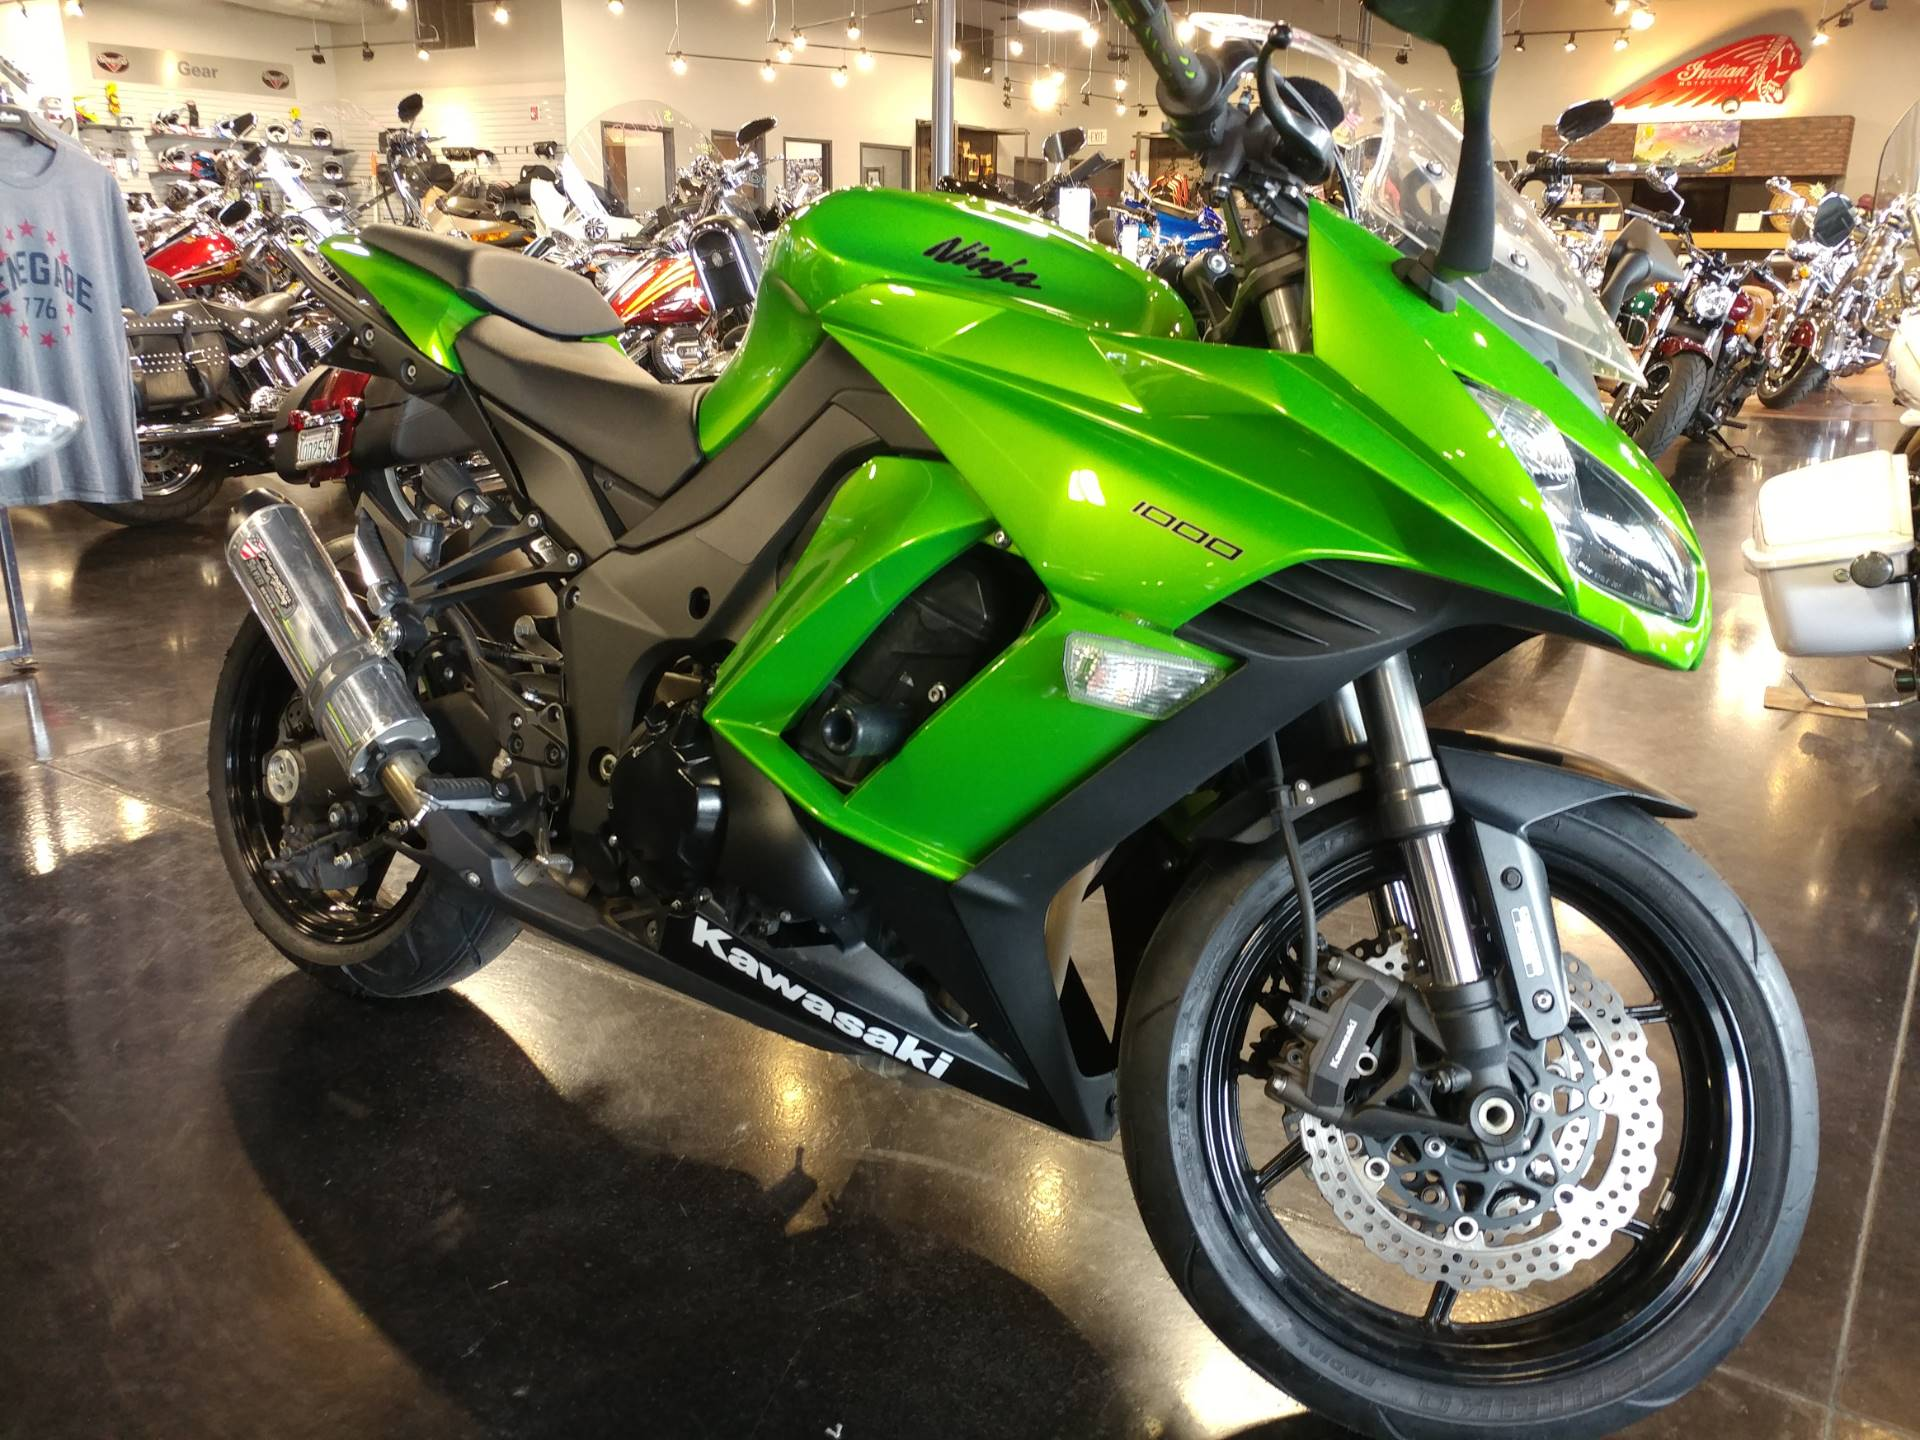 2014 Kawasaki Ninja® 1000 ABS in Pasco, Washington